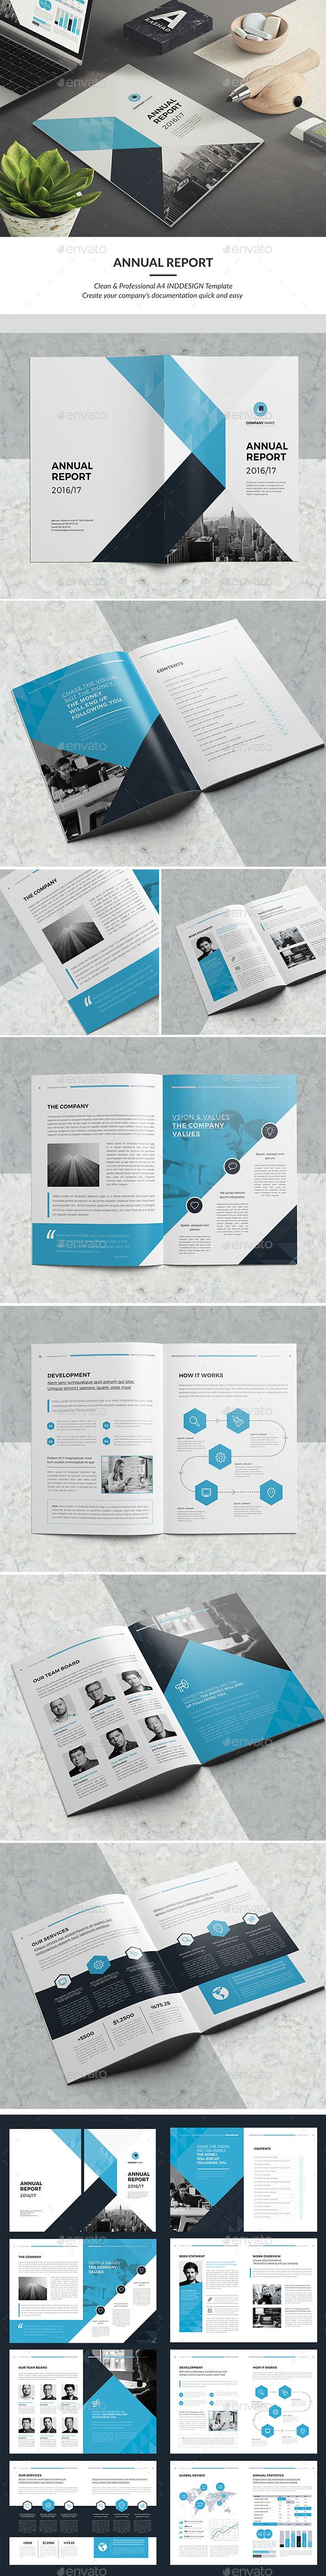 Annual Report  — InDesign Template #professional #brochure design • Download ➝ https://graphicriver.net/item/annual-report/18061251?ref=pxcr